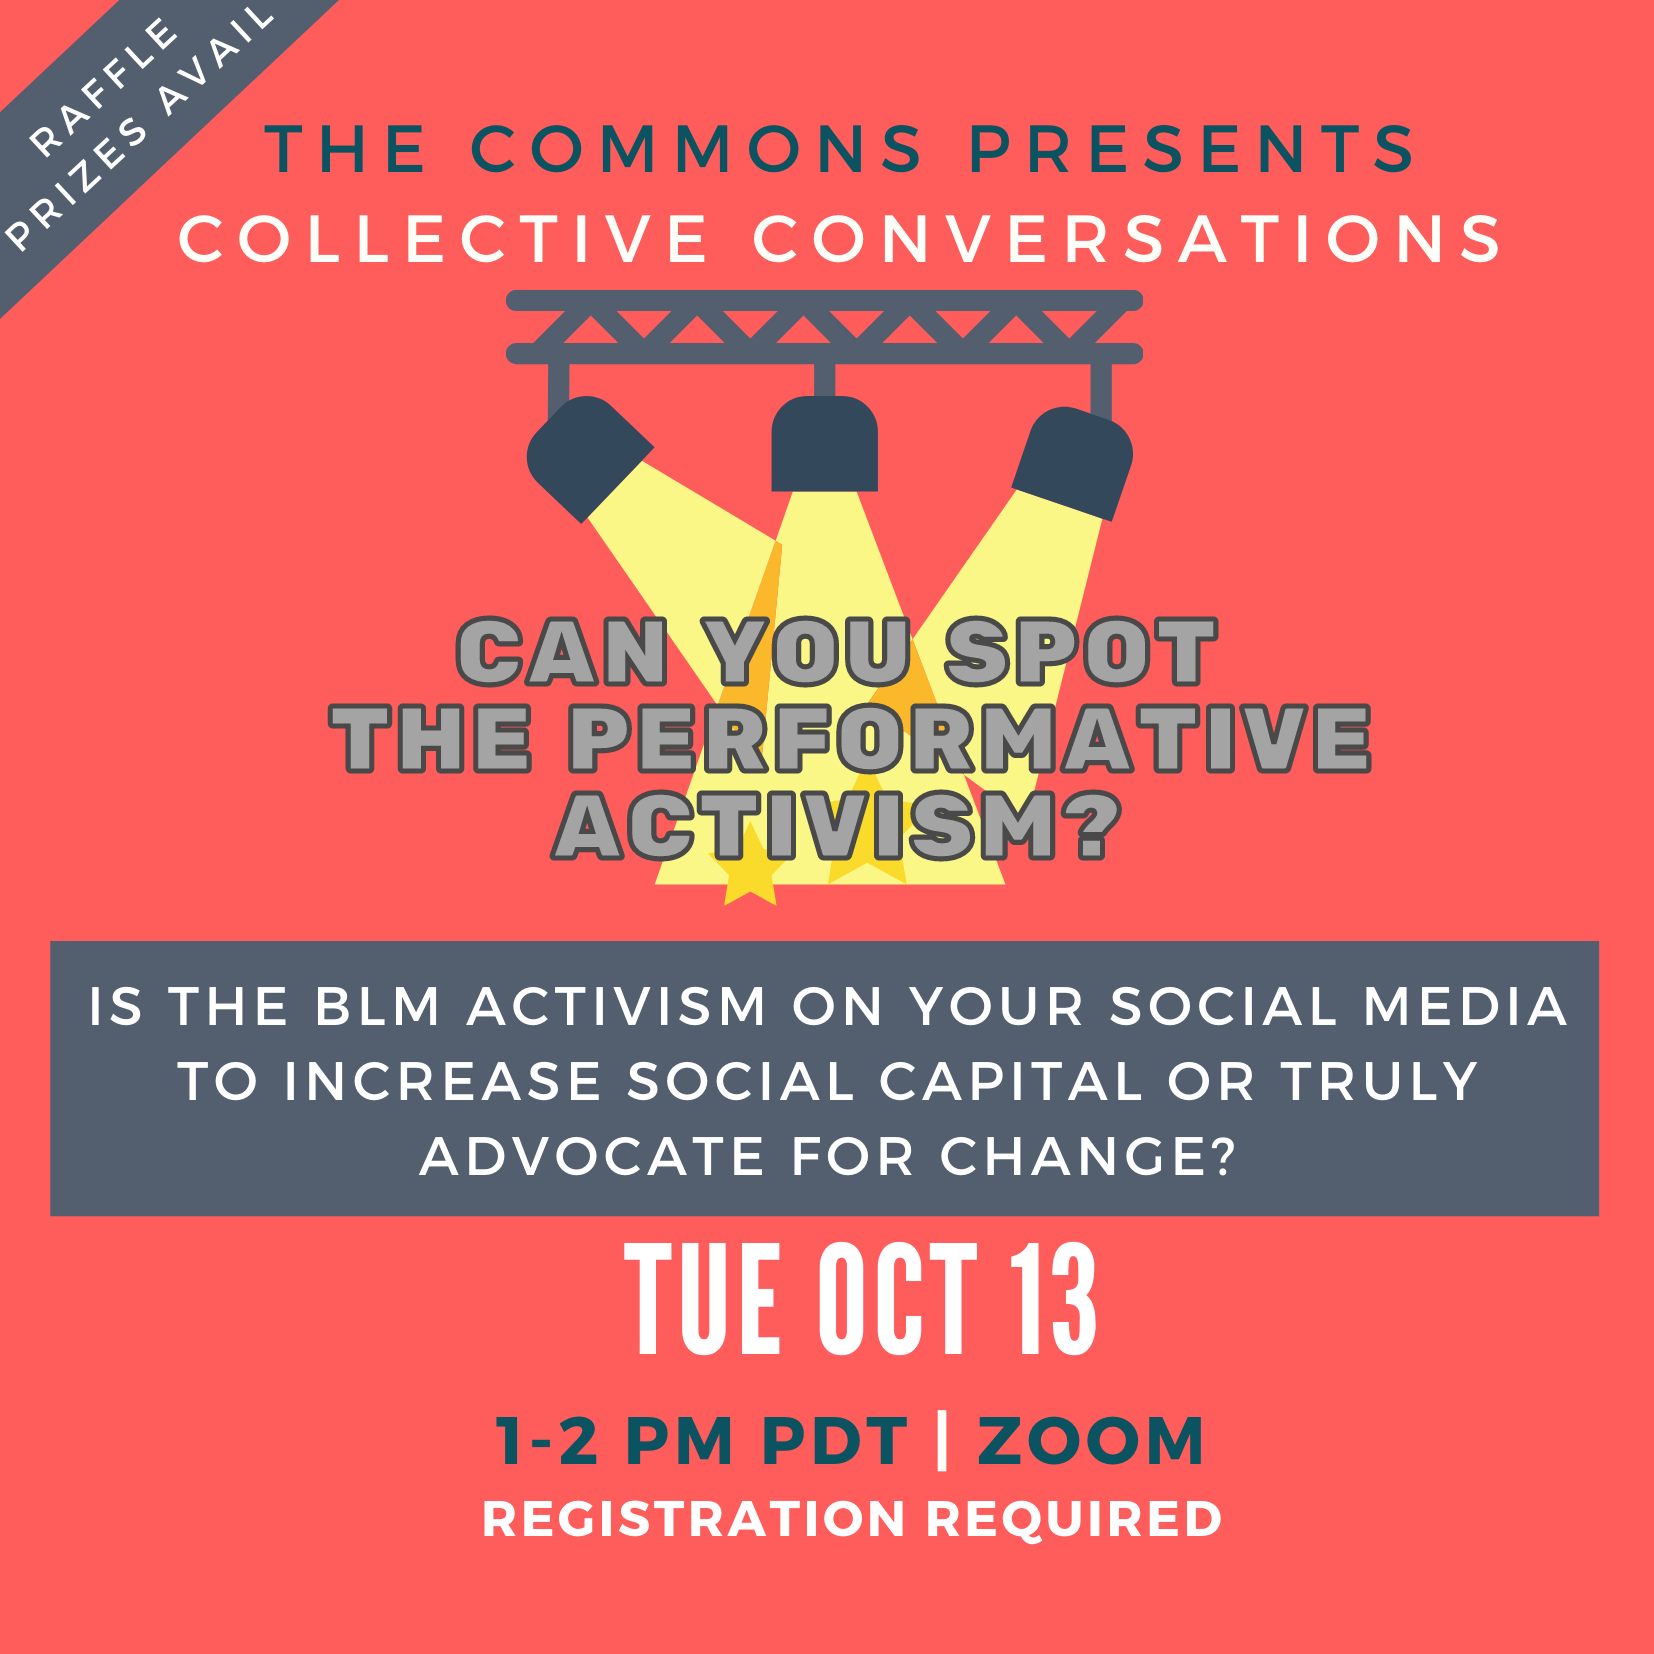 Flyer for Collective Conversations